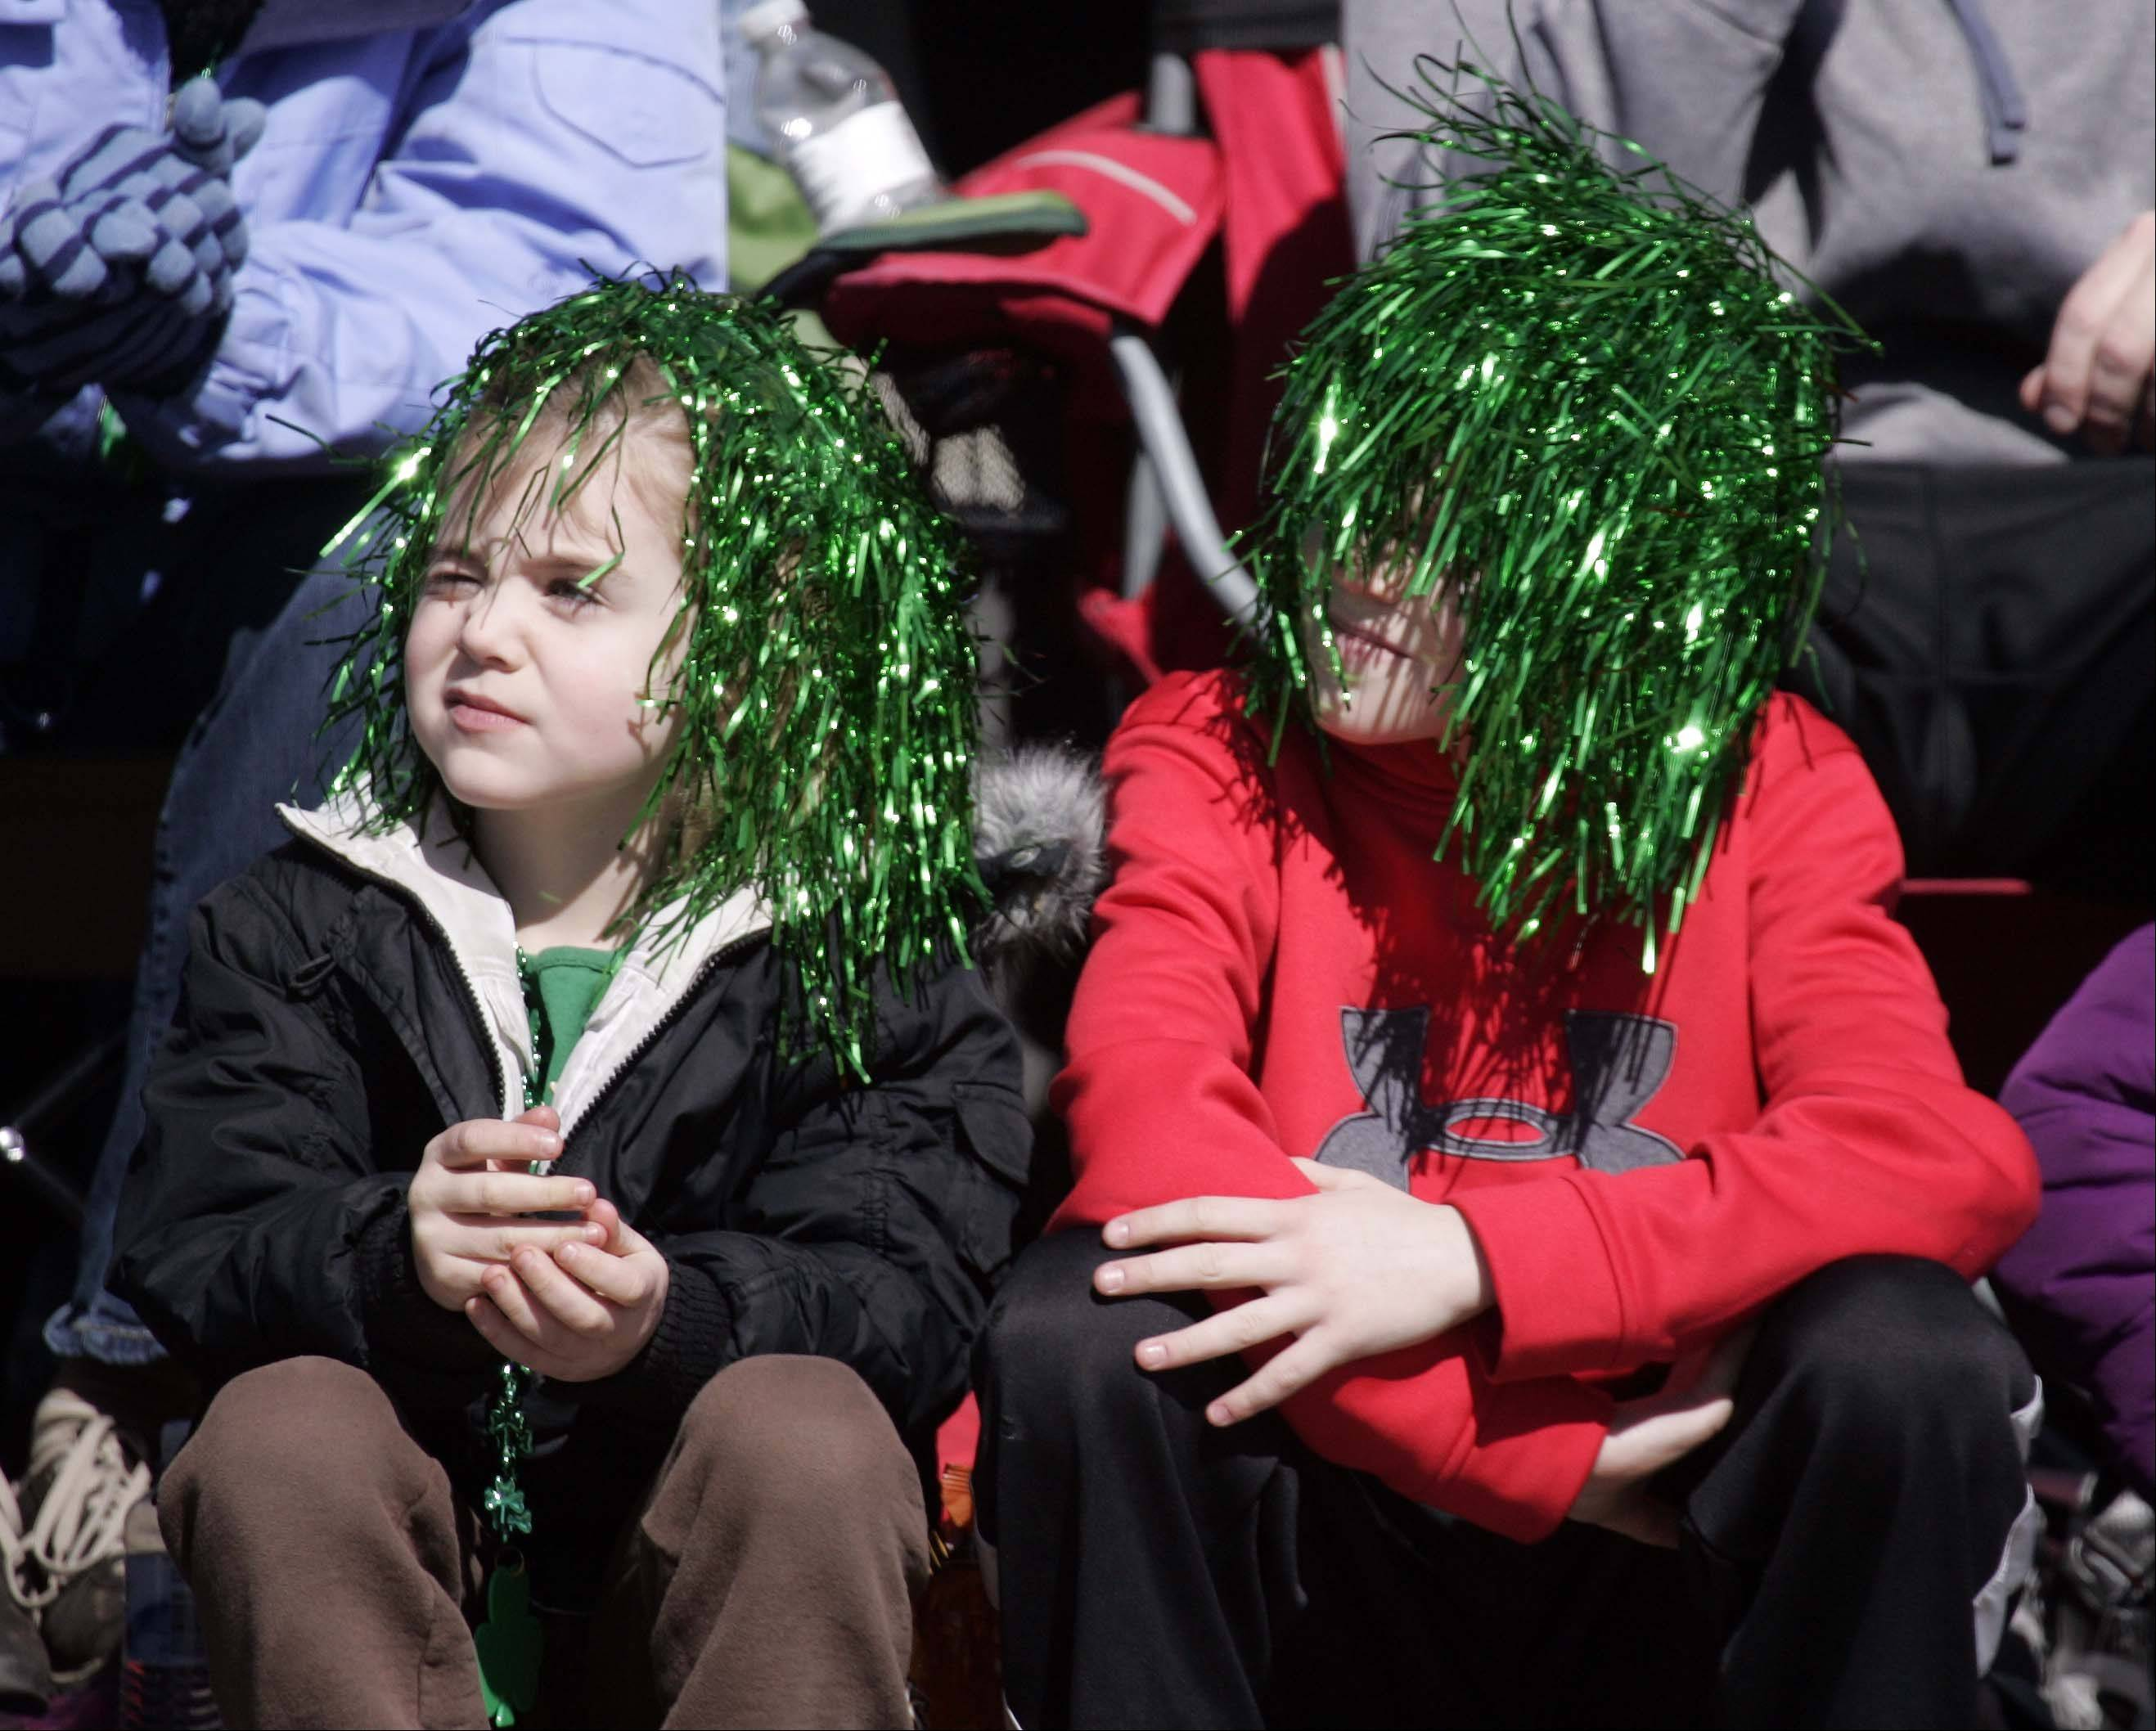 Donning some green hair, Haley Nelson, 5, of South Elgin, left and her brother Colin, 10, get a close-up view of the St. Patrick's Day parade last year in St. Charles.